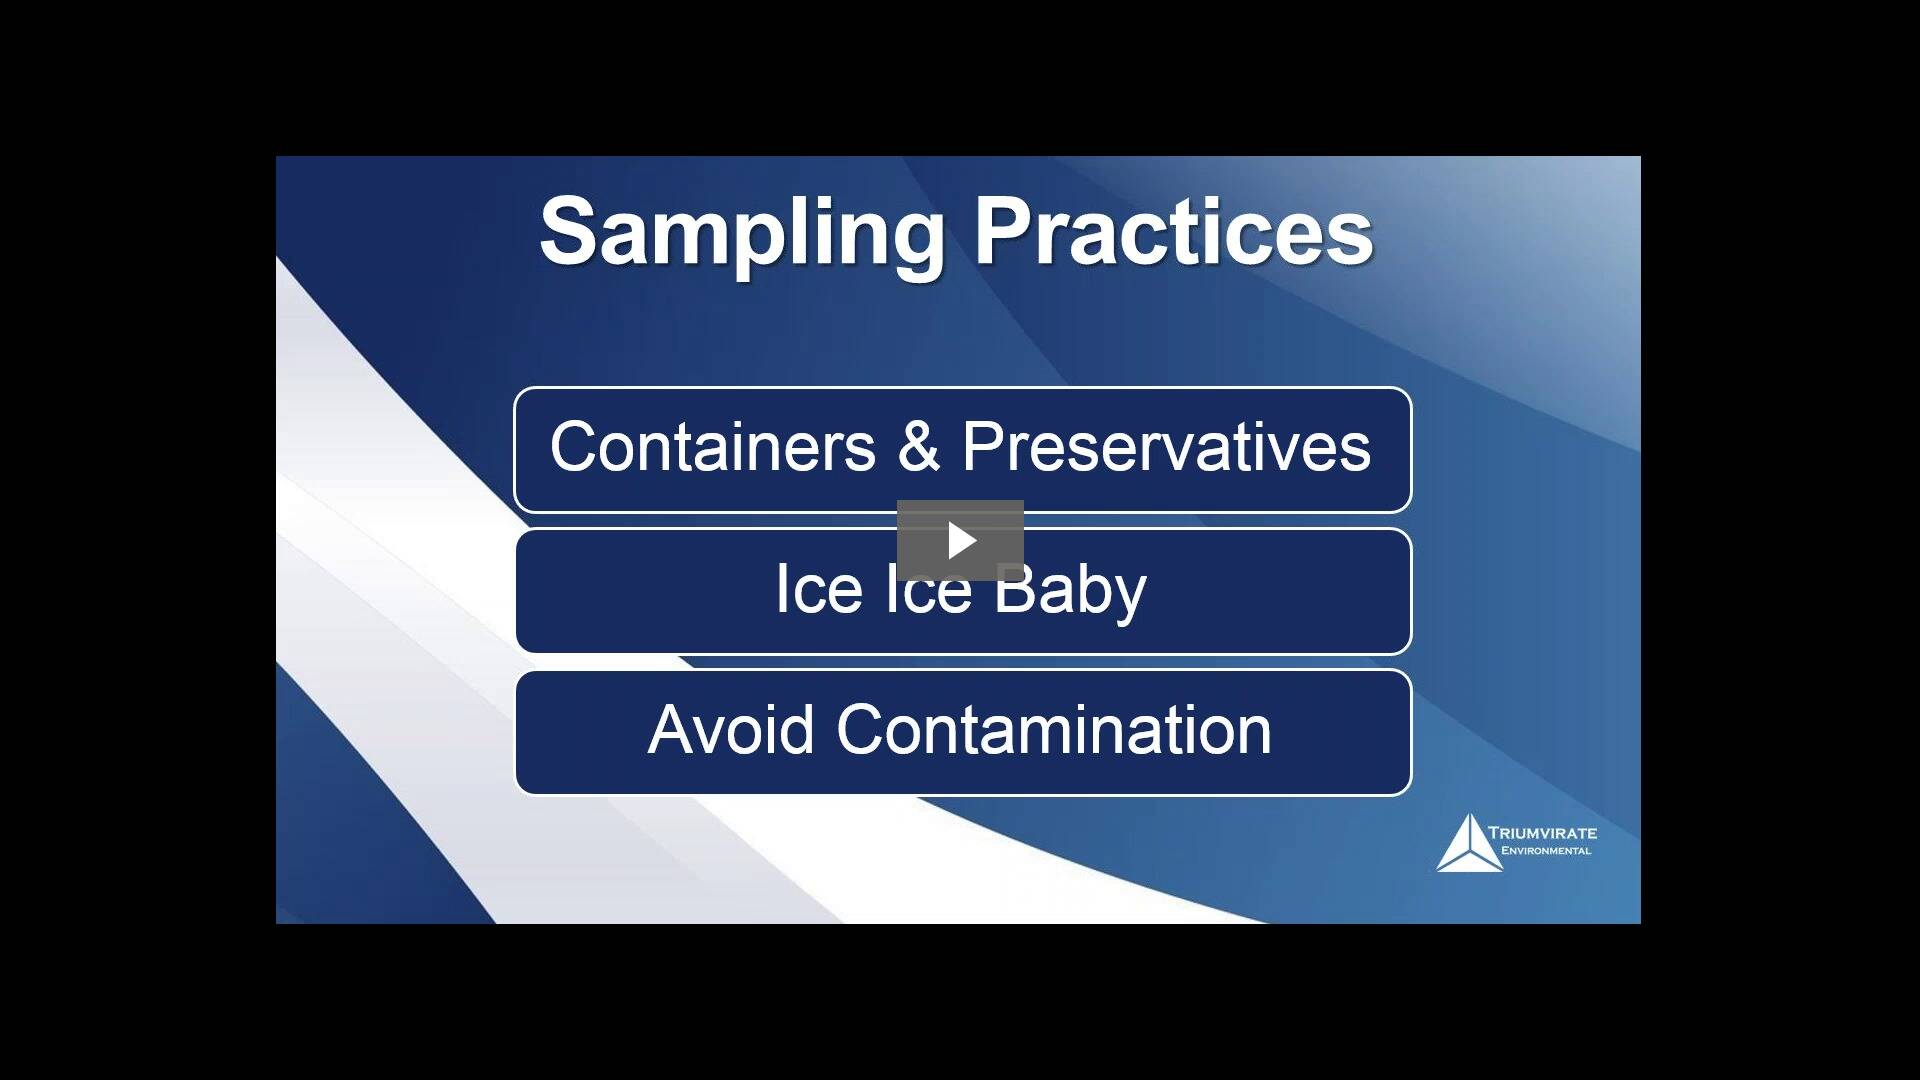 Webinar: How to Ensure Safety and Efficiency in Stormwater Sampling